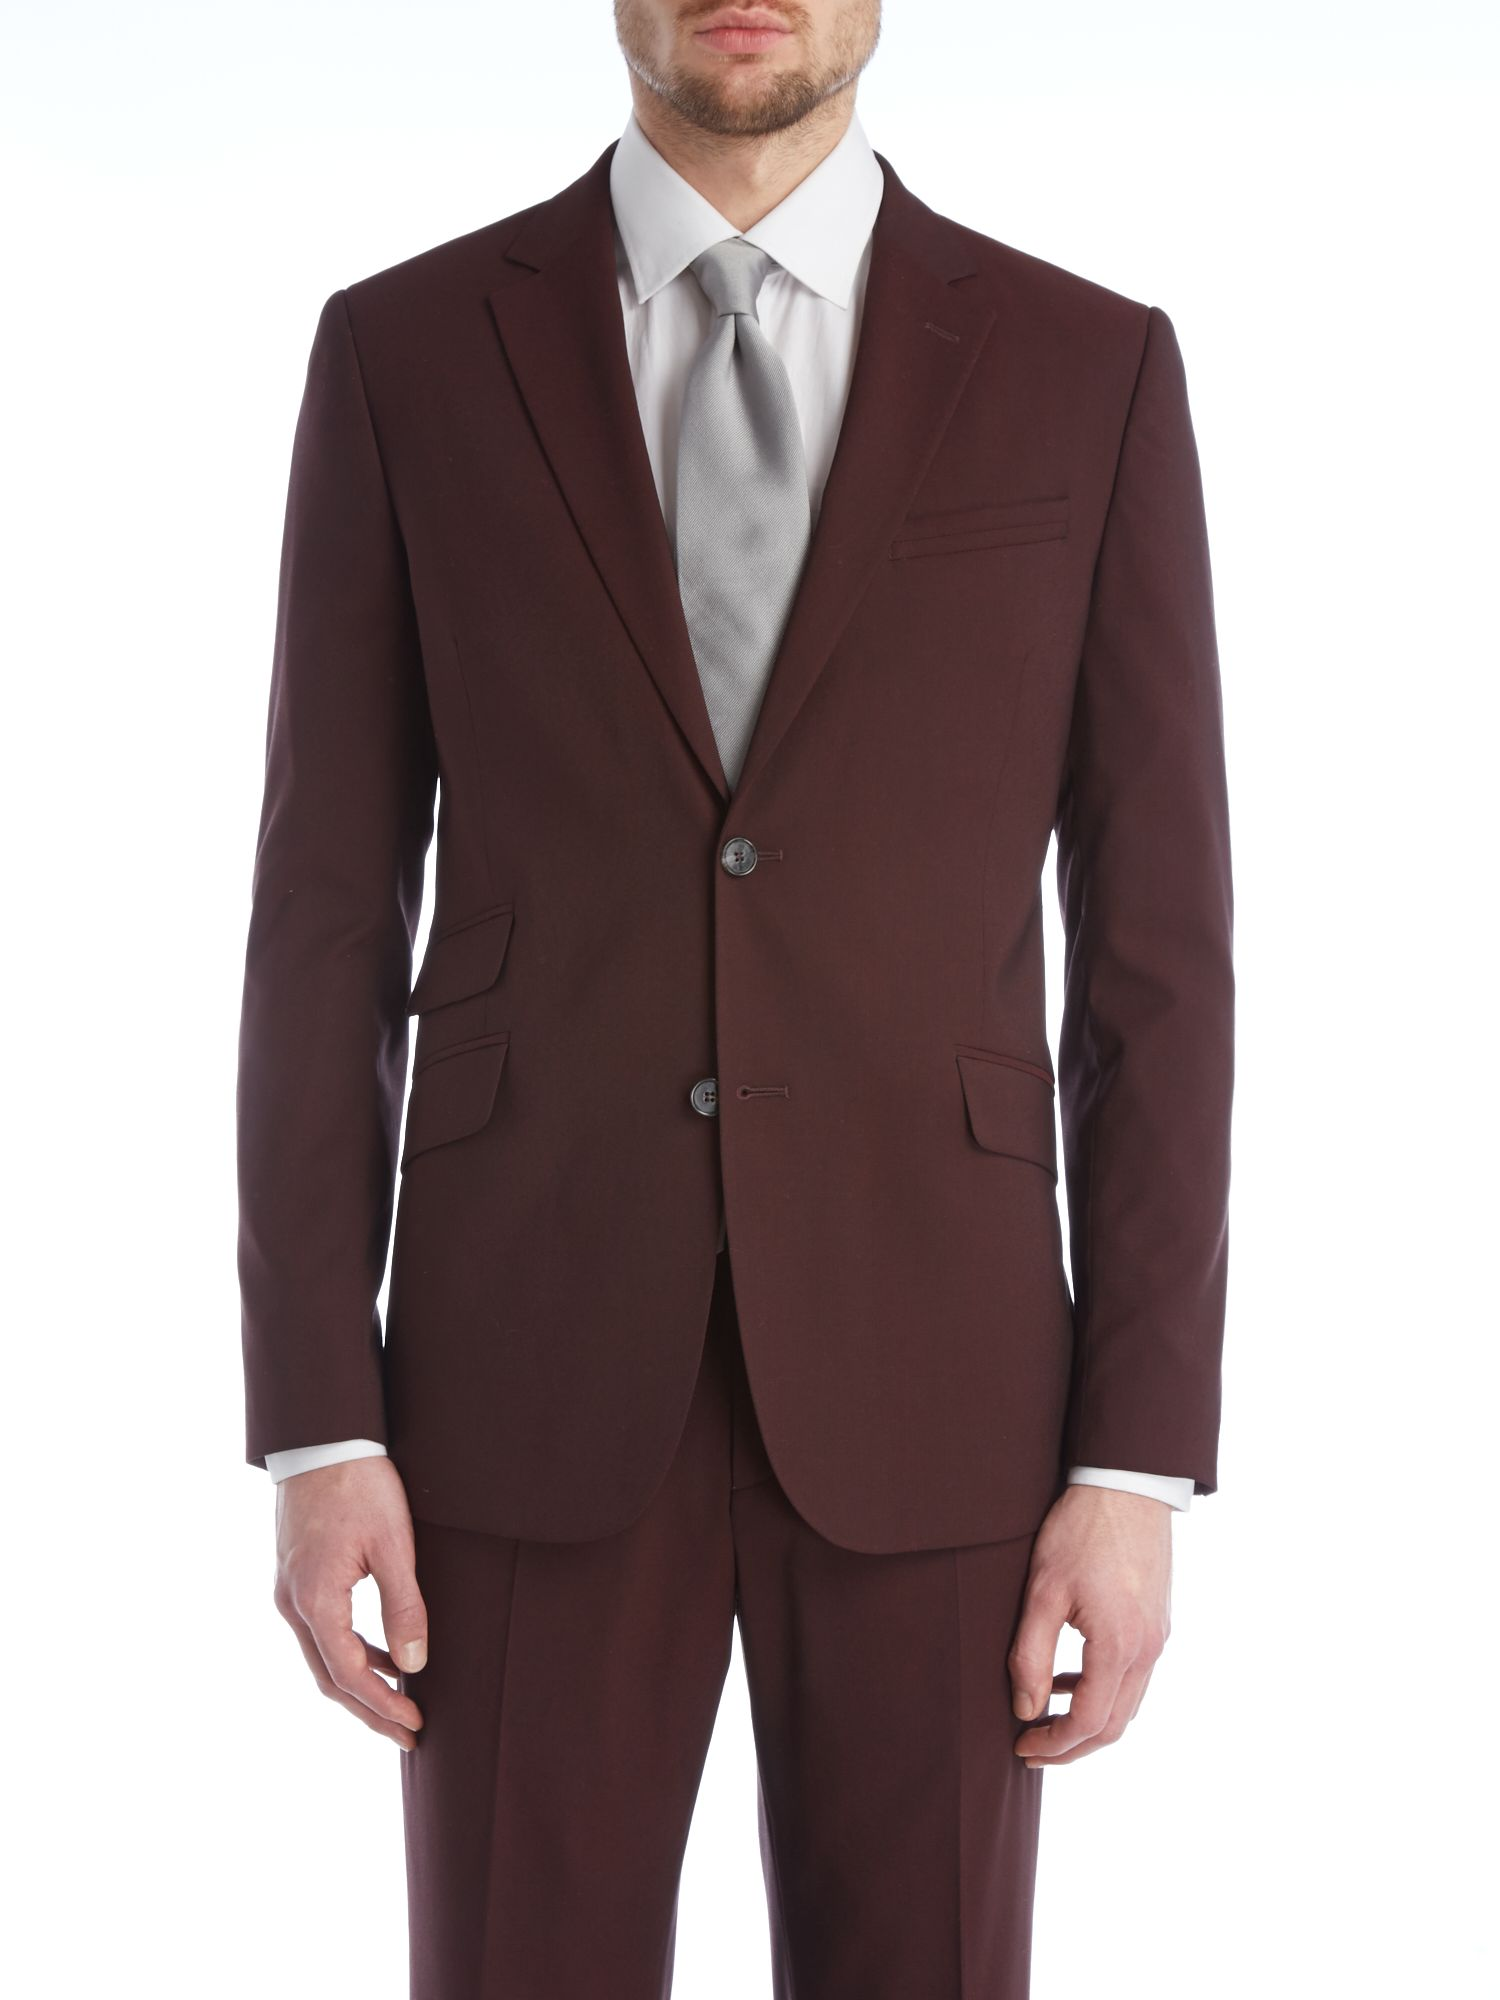 Ingleside n1 cut suit blazer